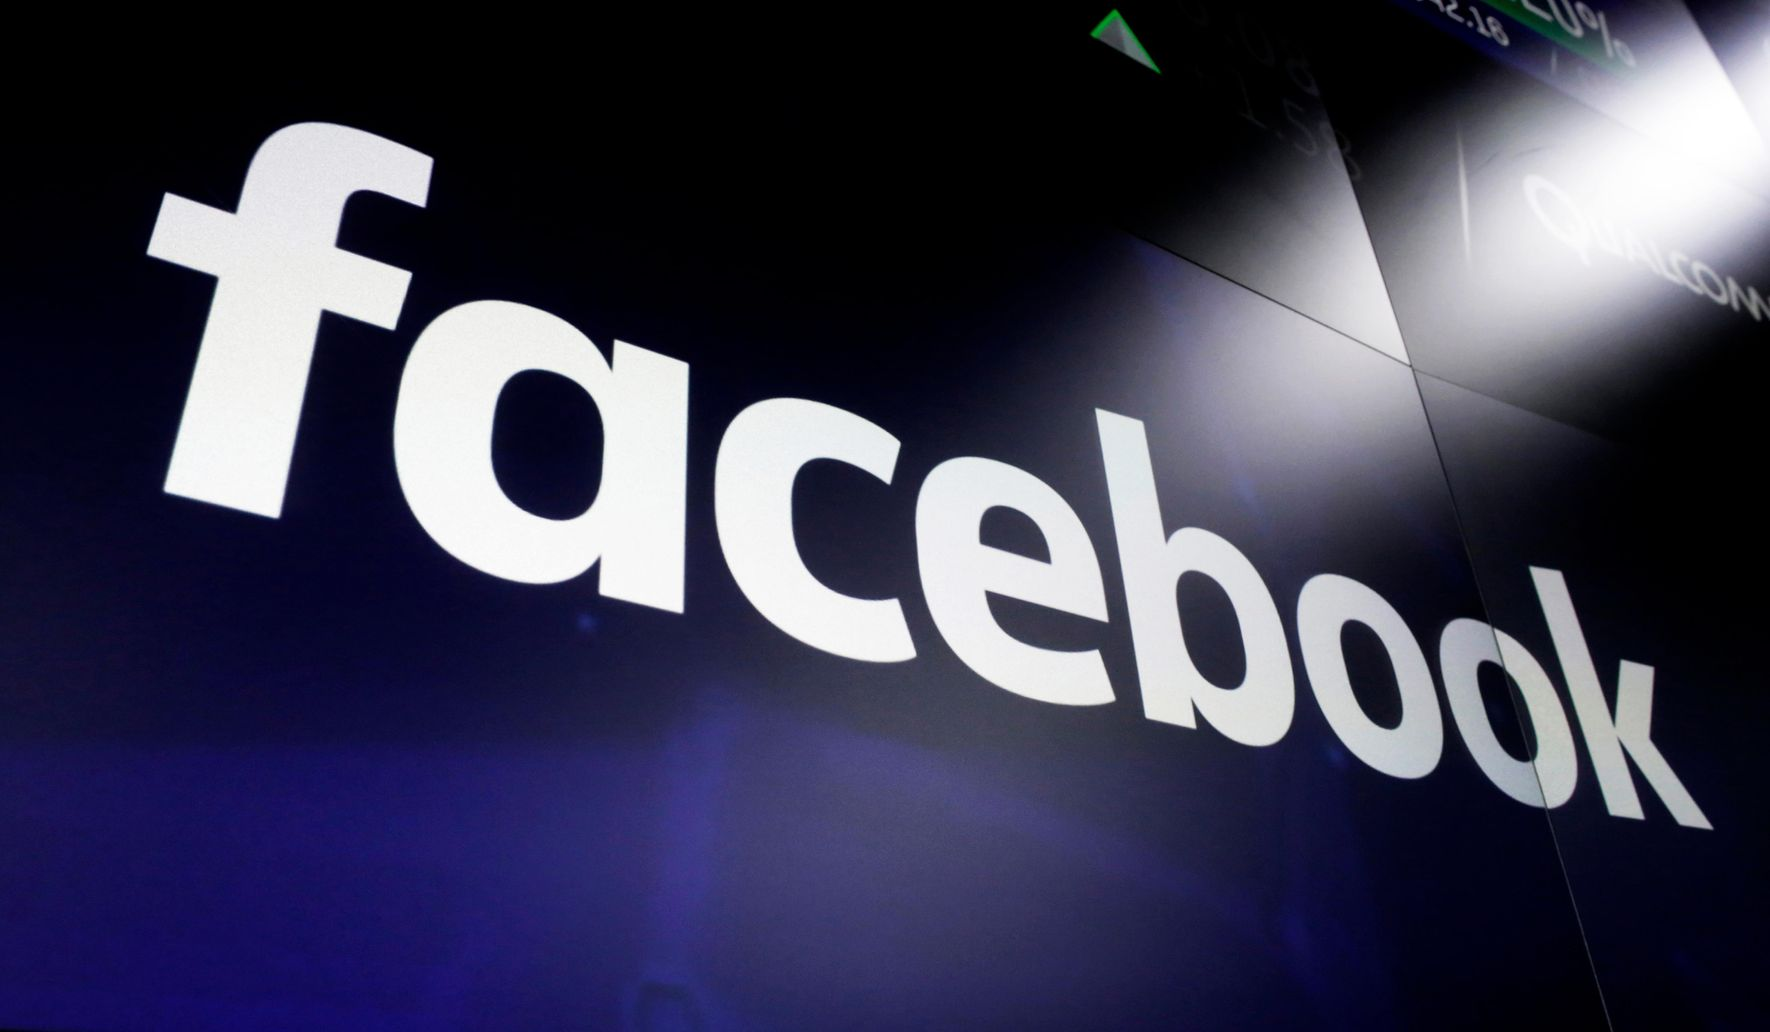 Facebook remains favored platform for manipulating public opinion: Report